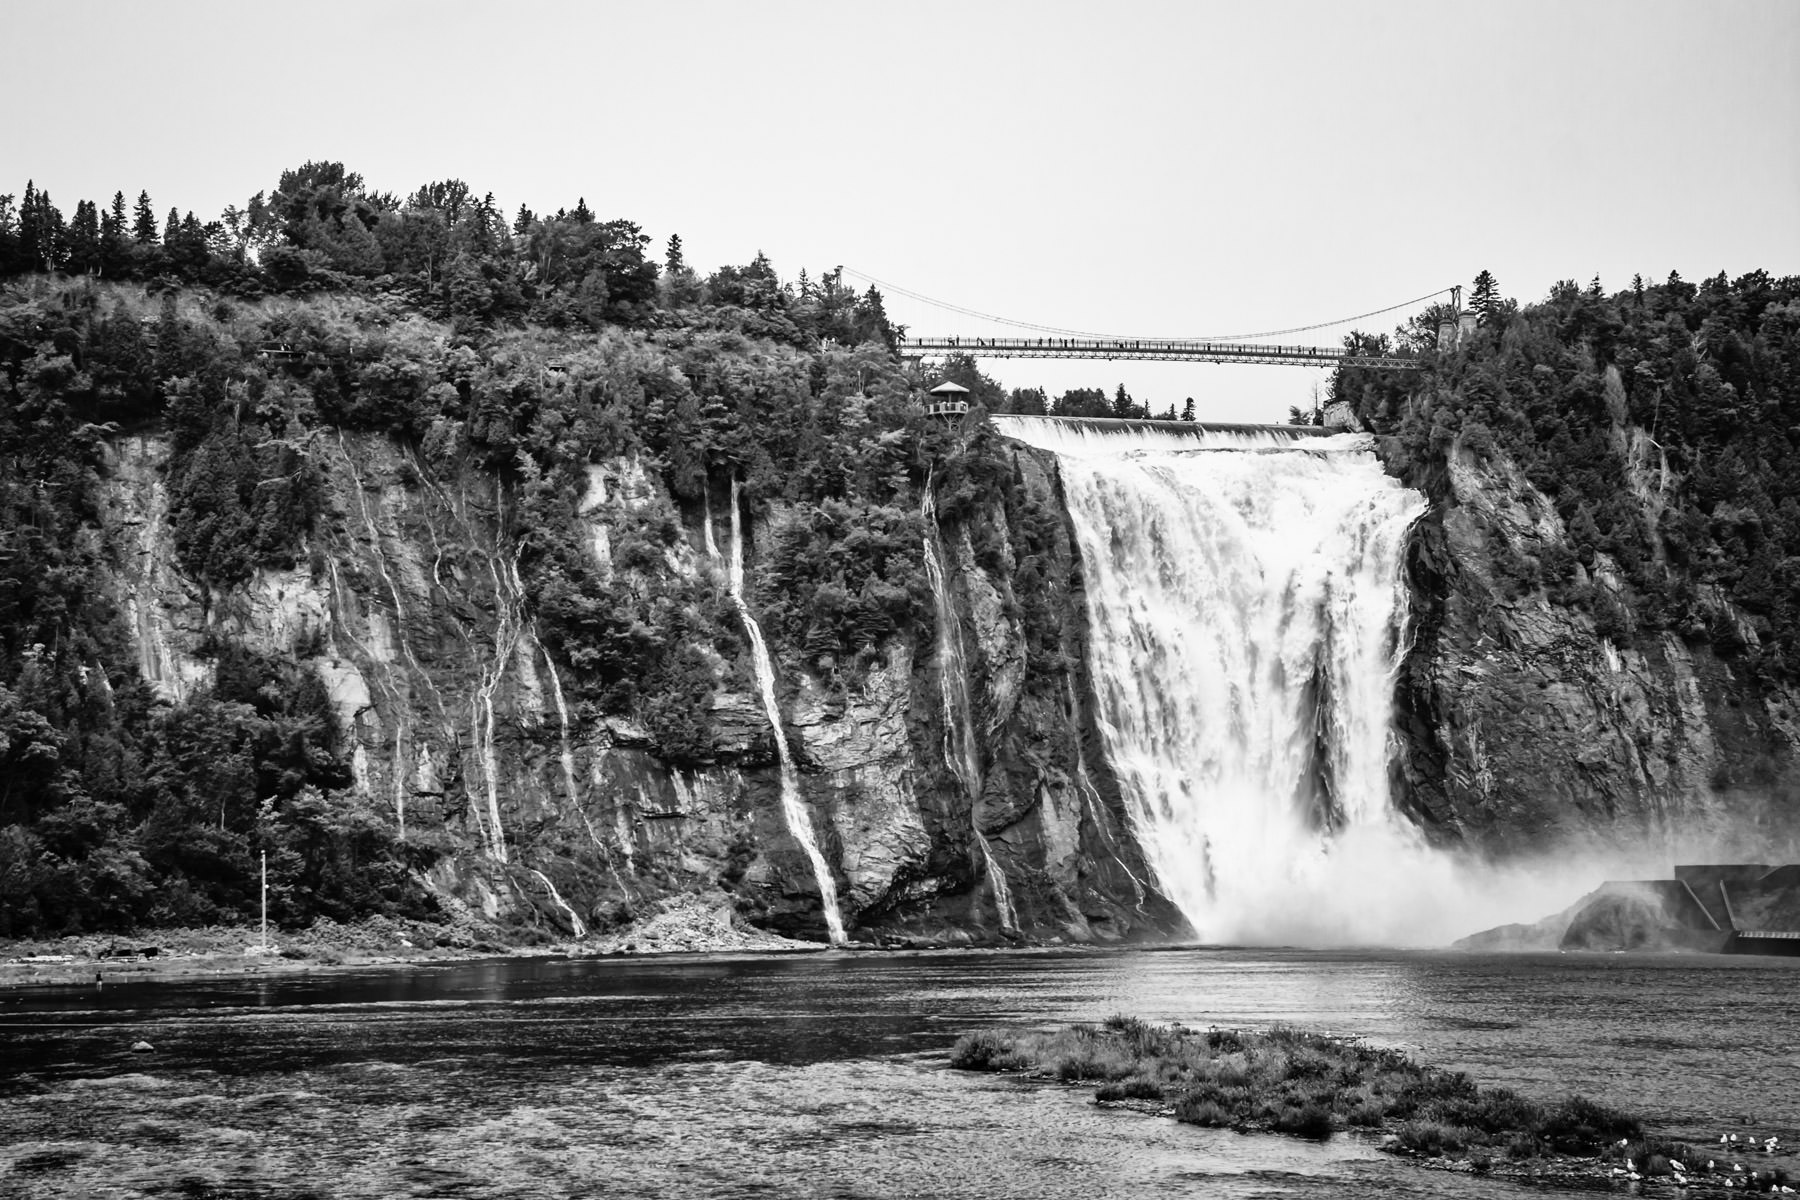 Montmorency Falls near Québec City, Canada.